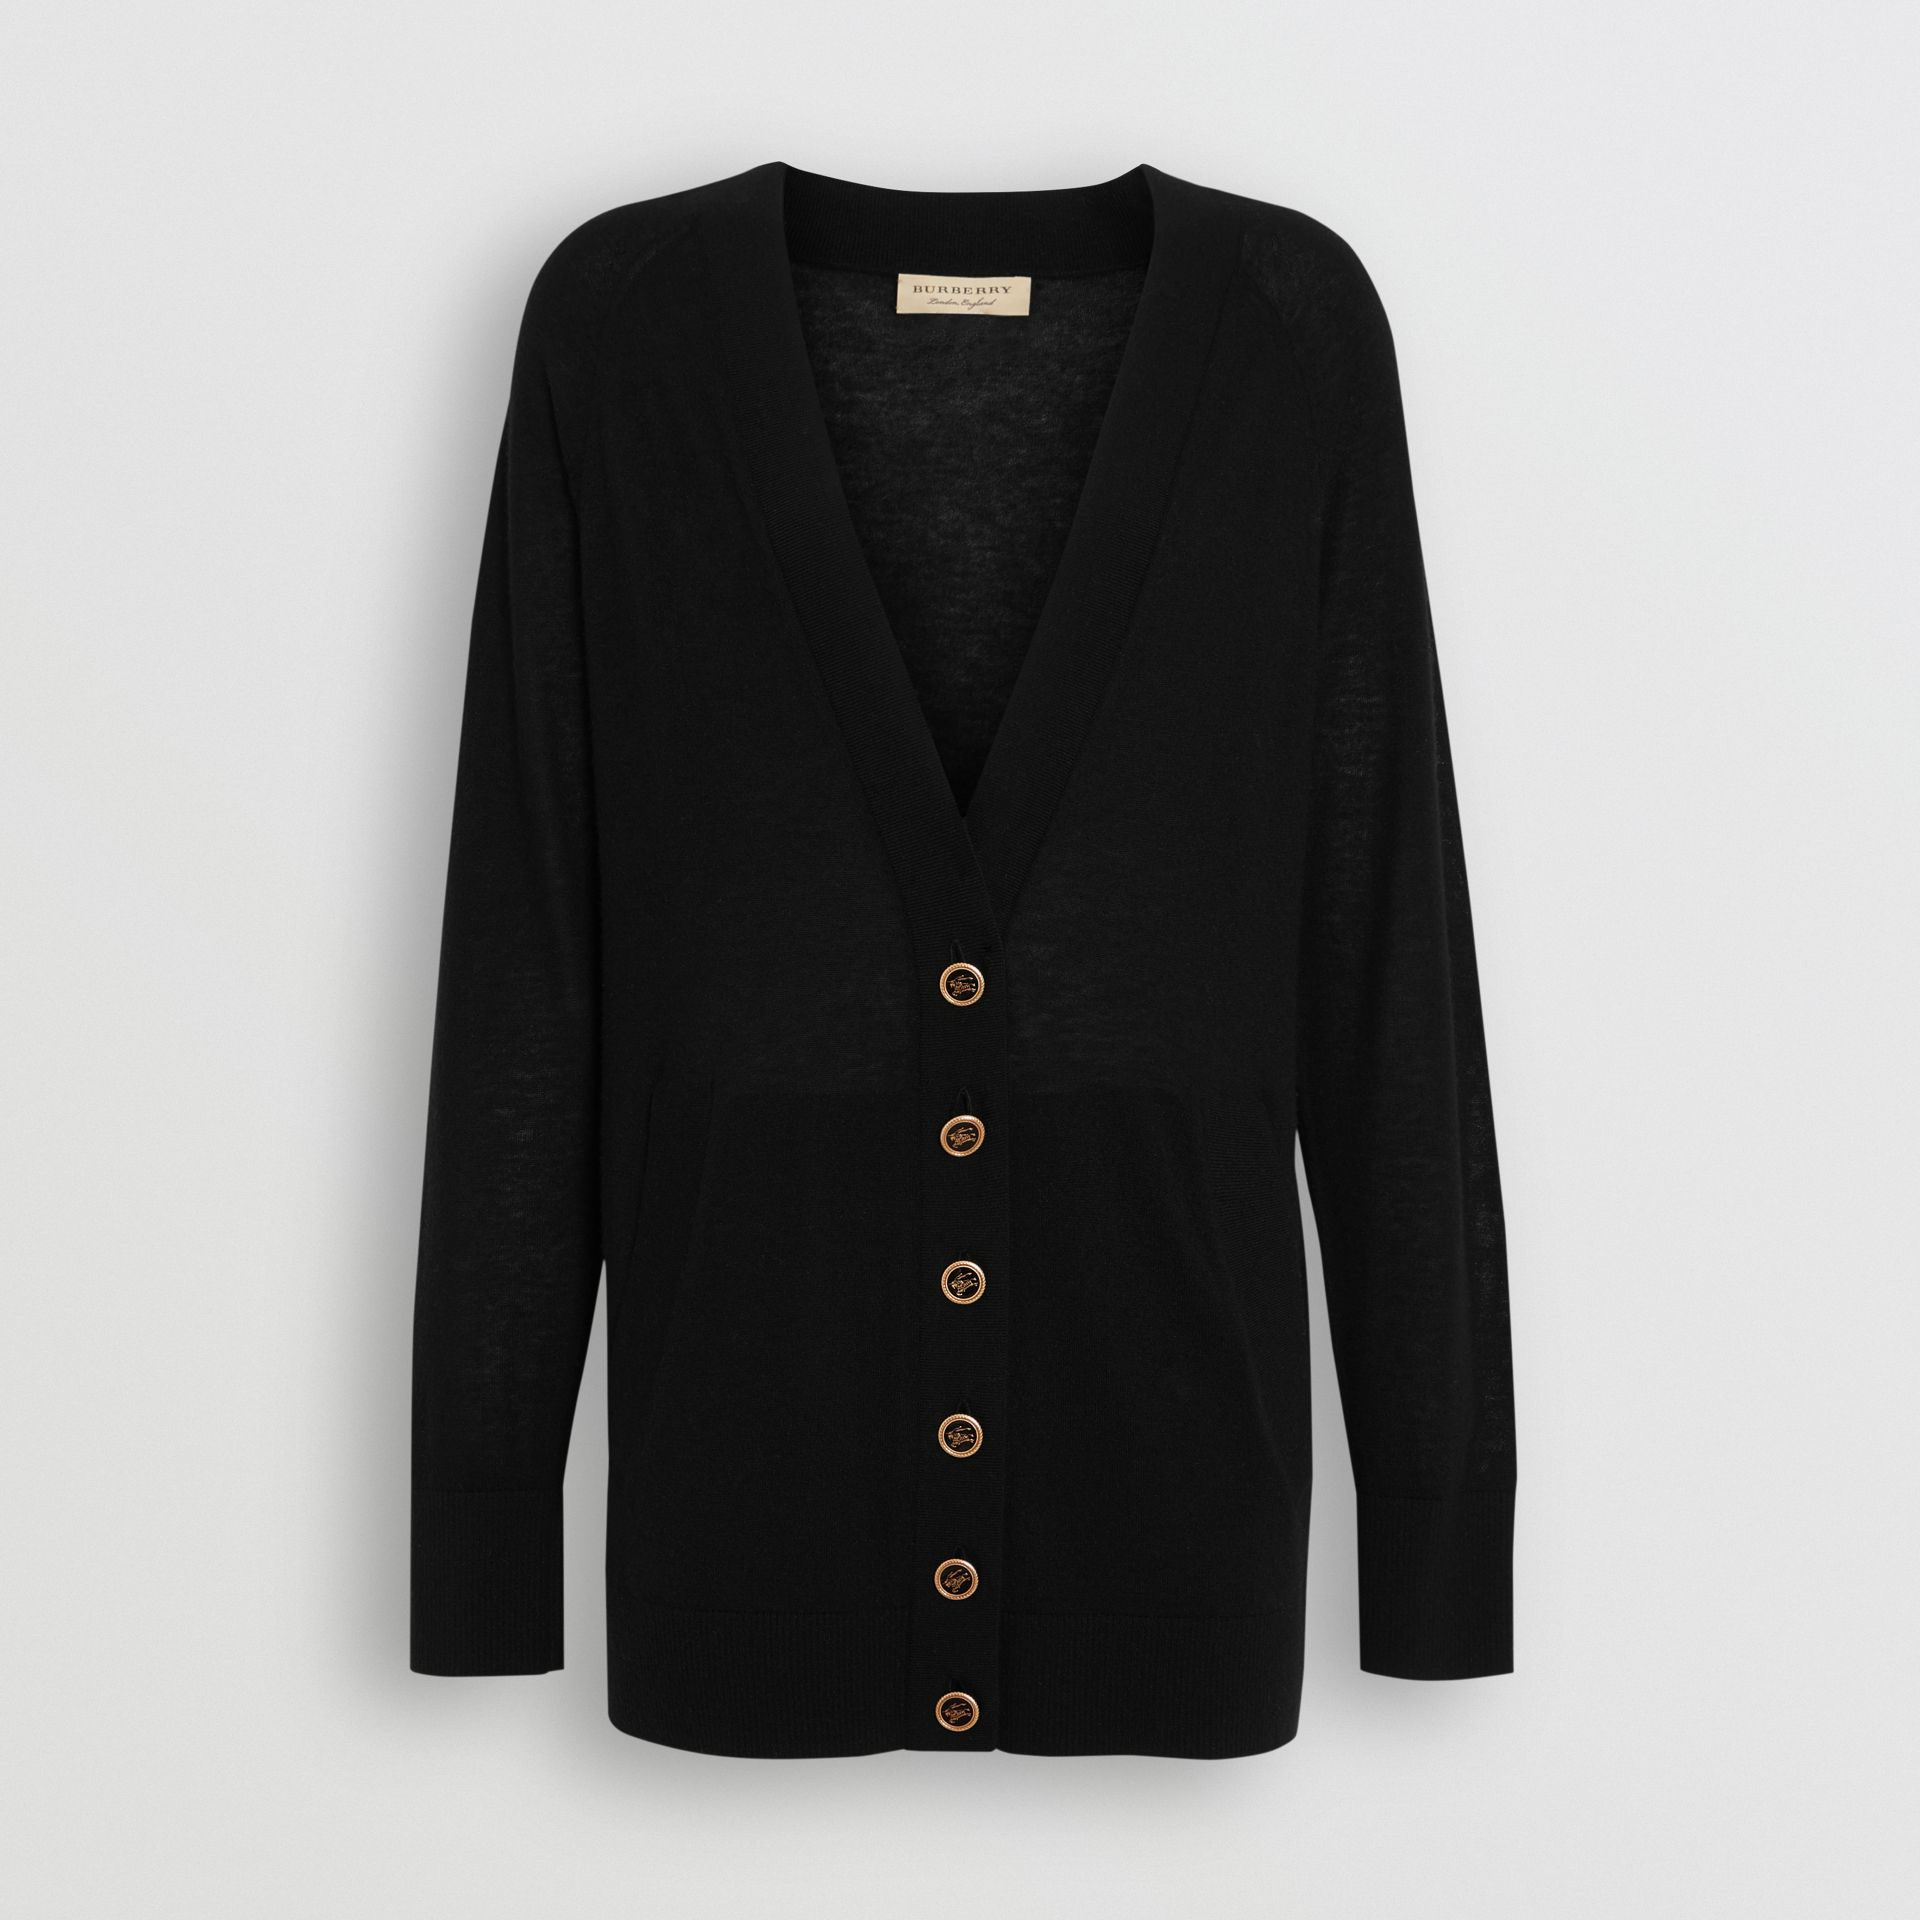 Cashmere V-neck Cardigan in Black - Women | Burberry United Kingdom - gallery image 3